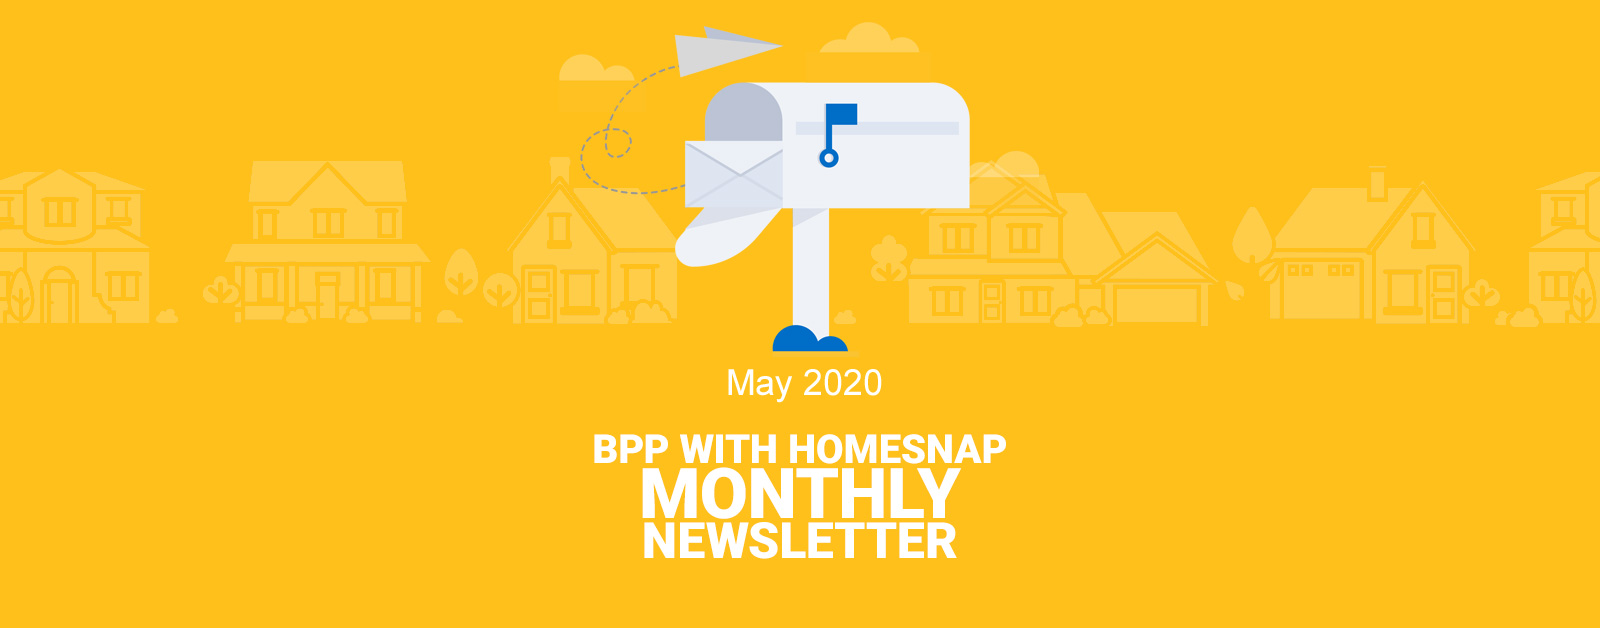 May Newsletter BPP